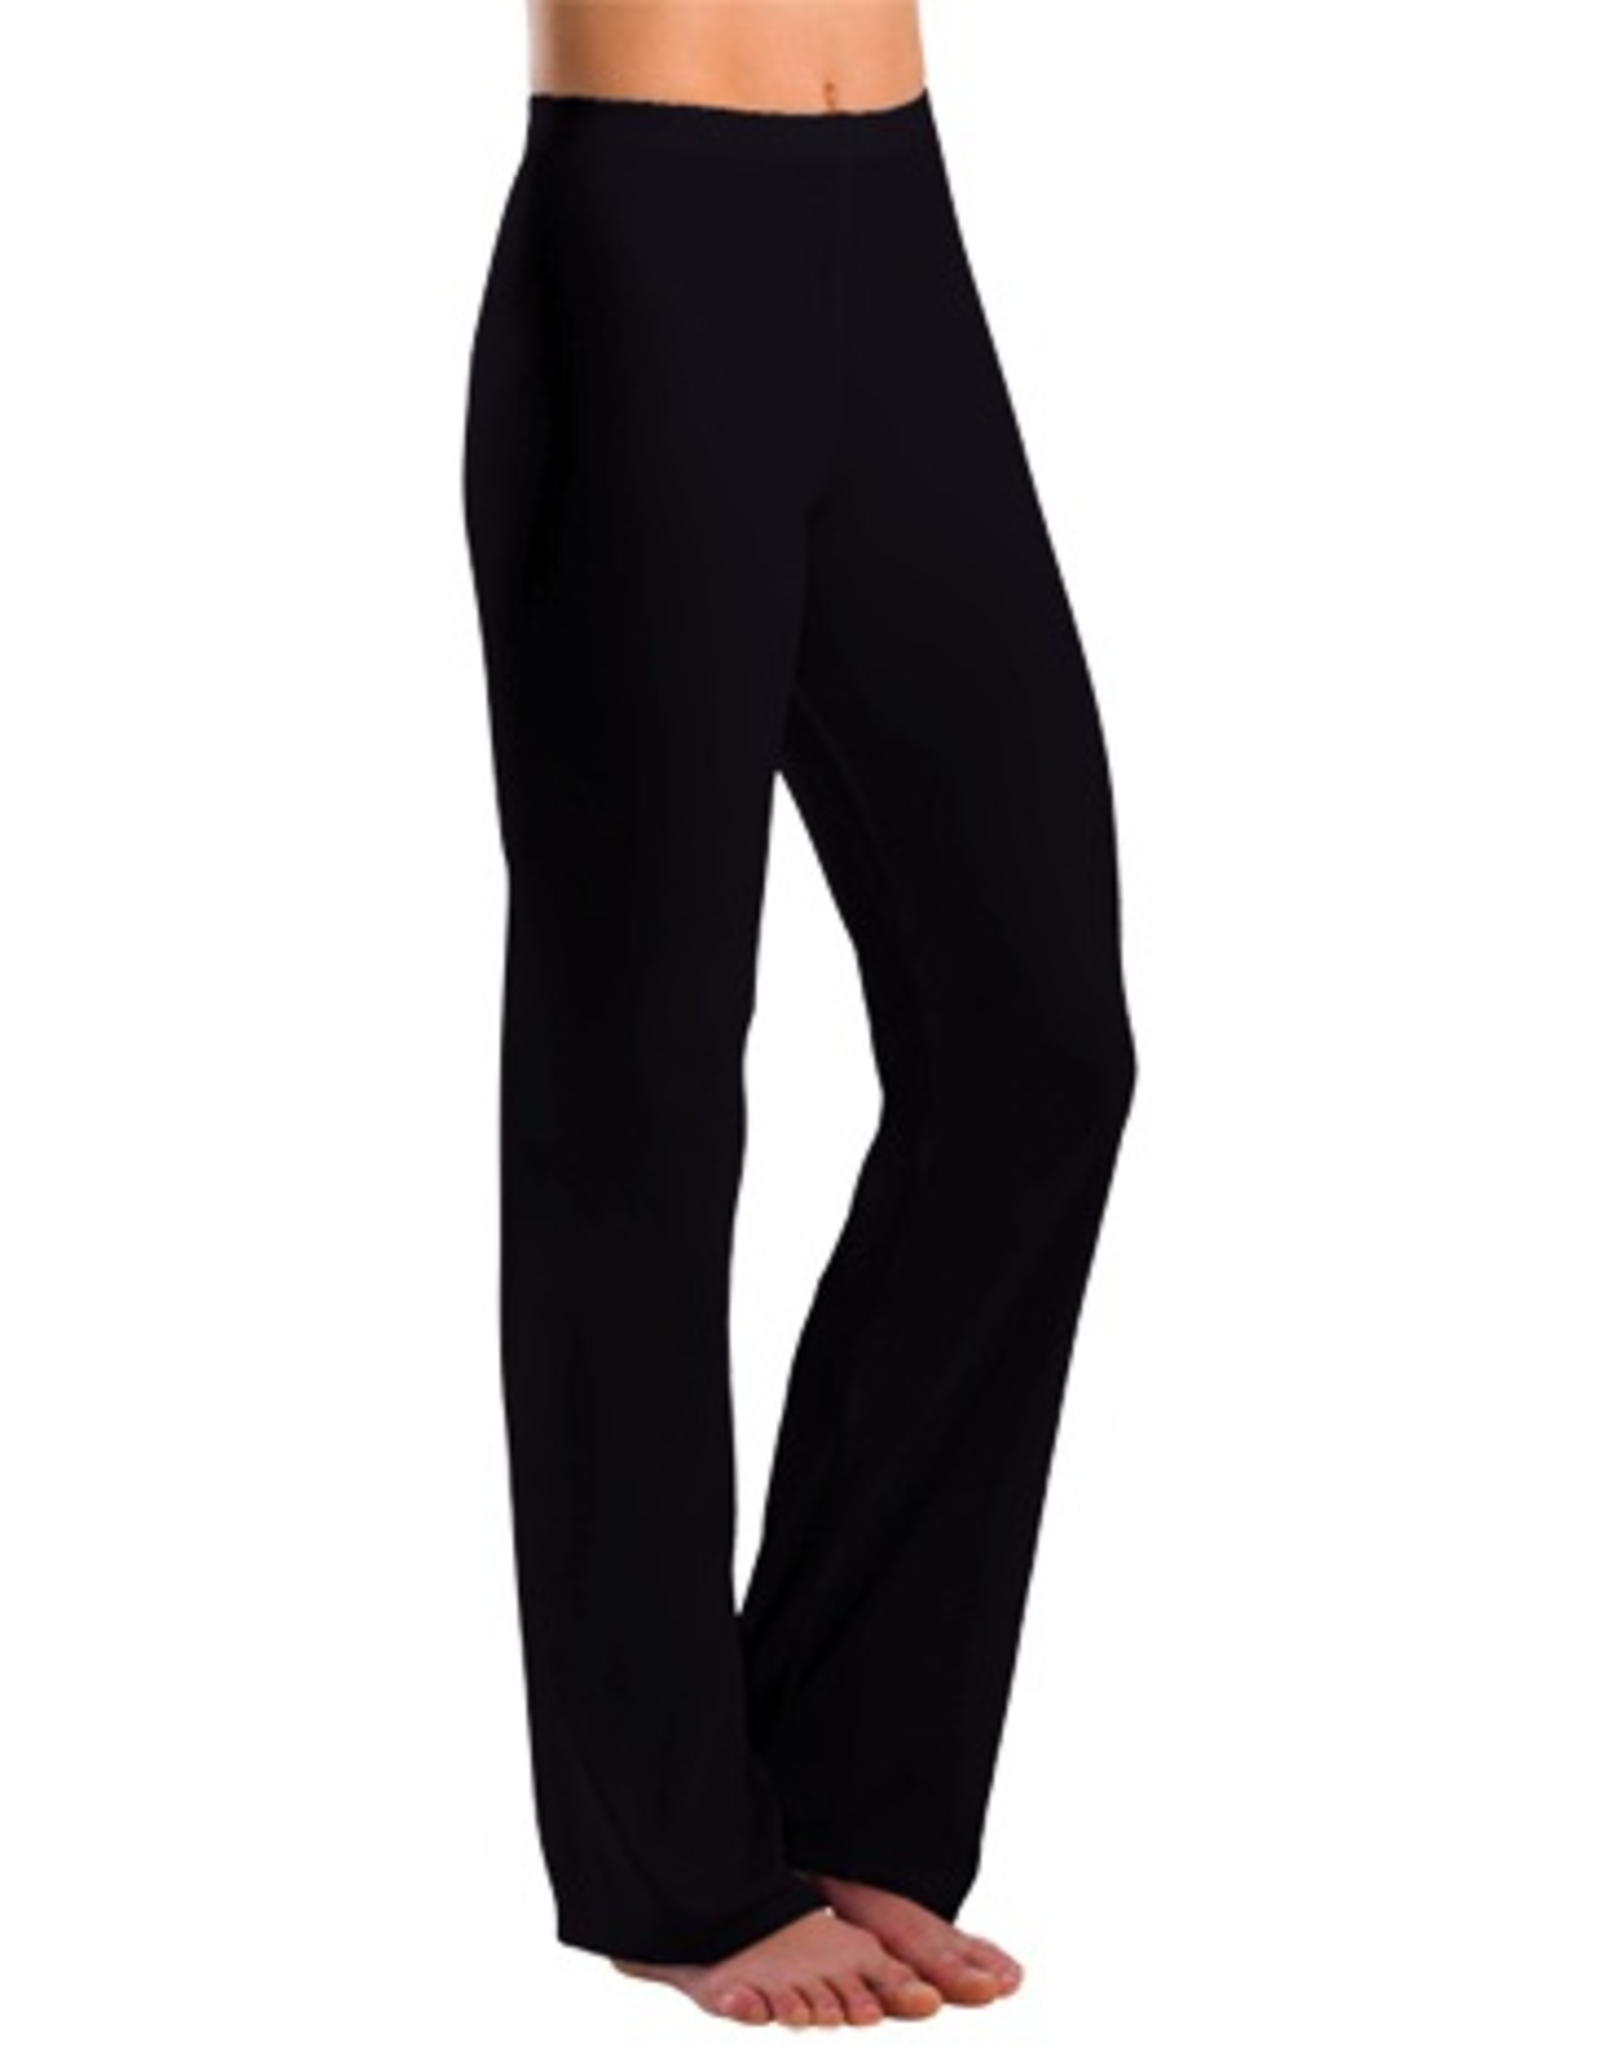 Motionwear 7152 Straight Waist Cotton Jazz Pants Youth